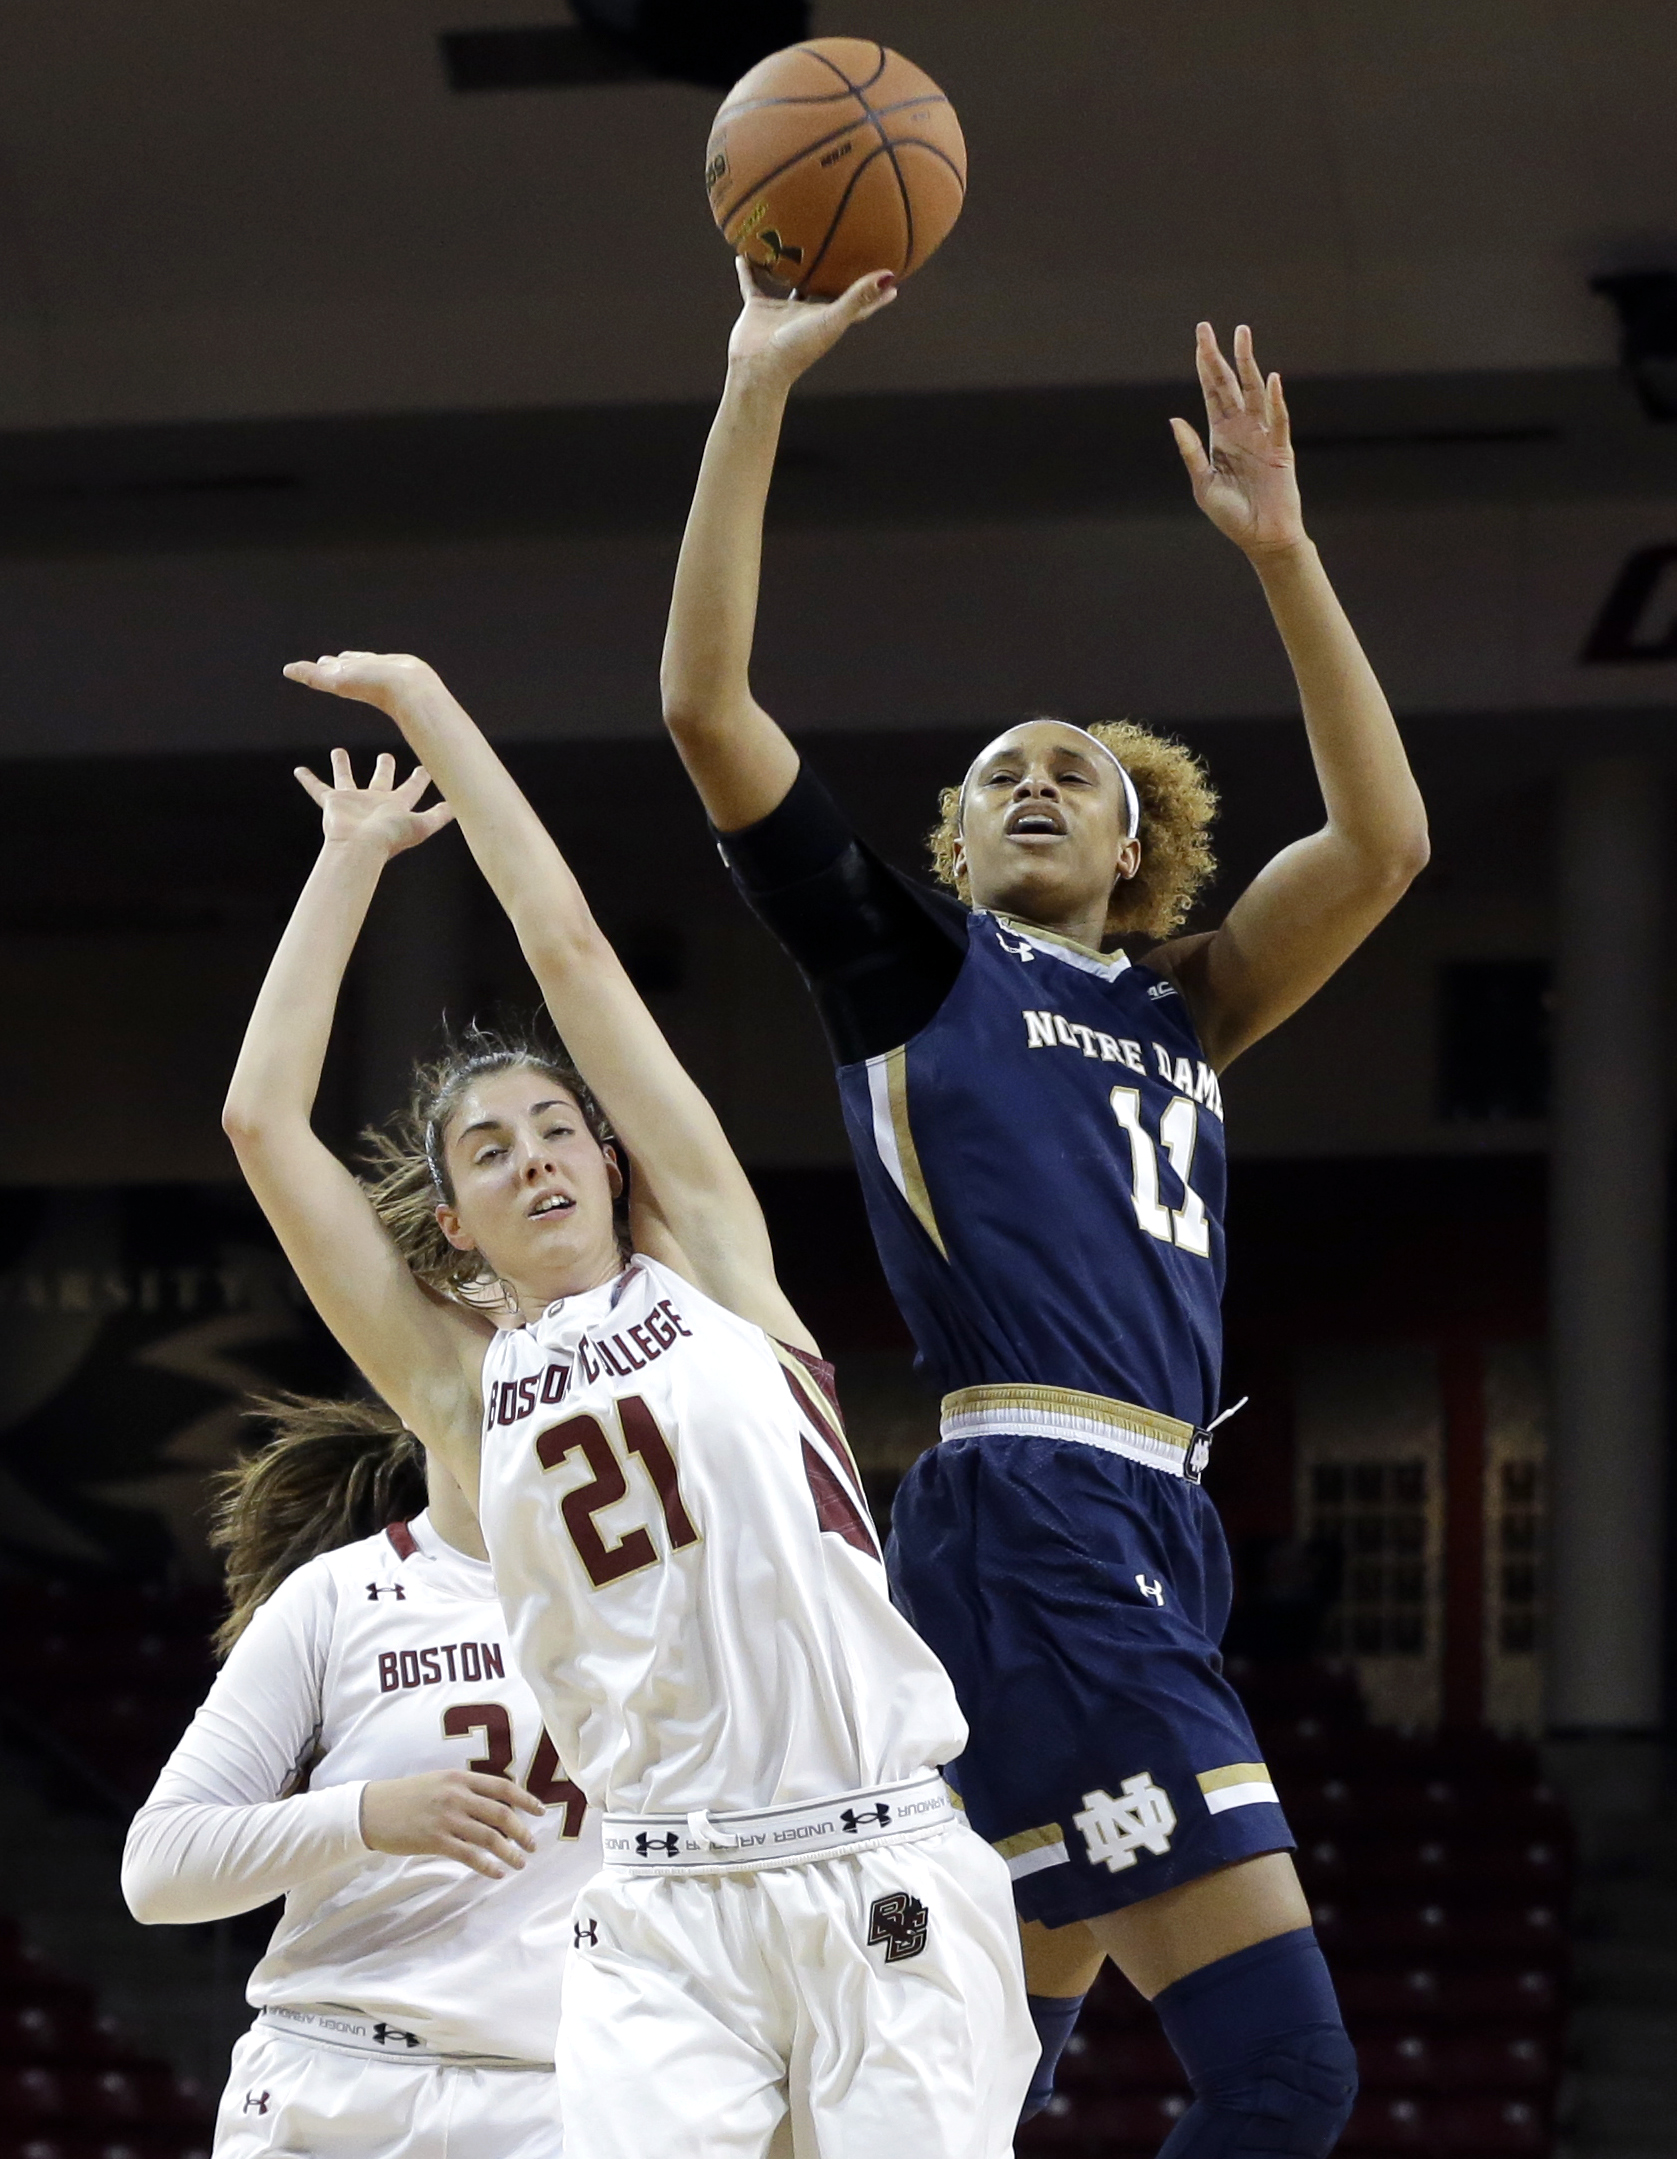 Notre Dame's Brianna Turner (11) gets a shot off against Boston College's Marti Mosetti (21) with a second left  in the first quarter of an NCAA college basketball game in Boston, Thursday, Jan. 14, 2016. (AP Photo/Elise Amendola)